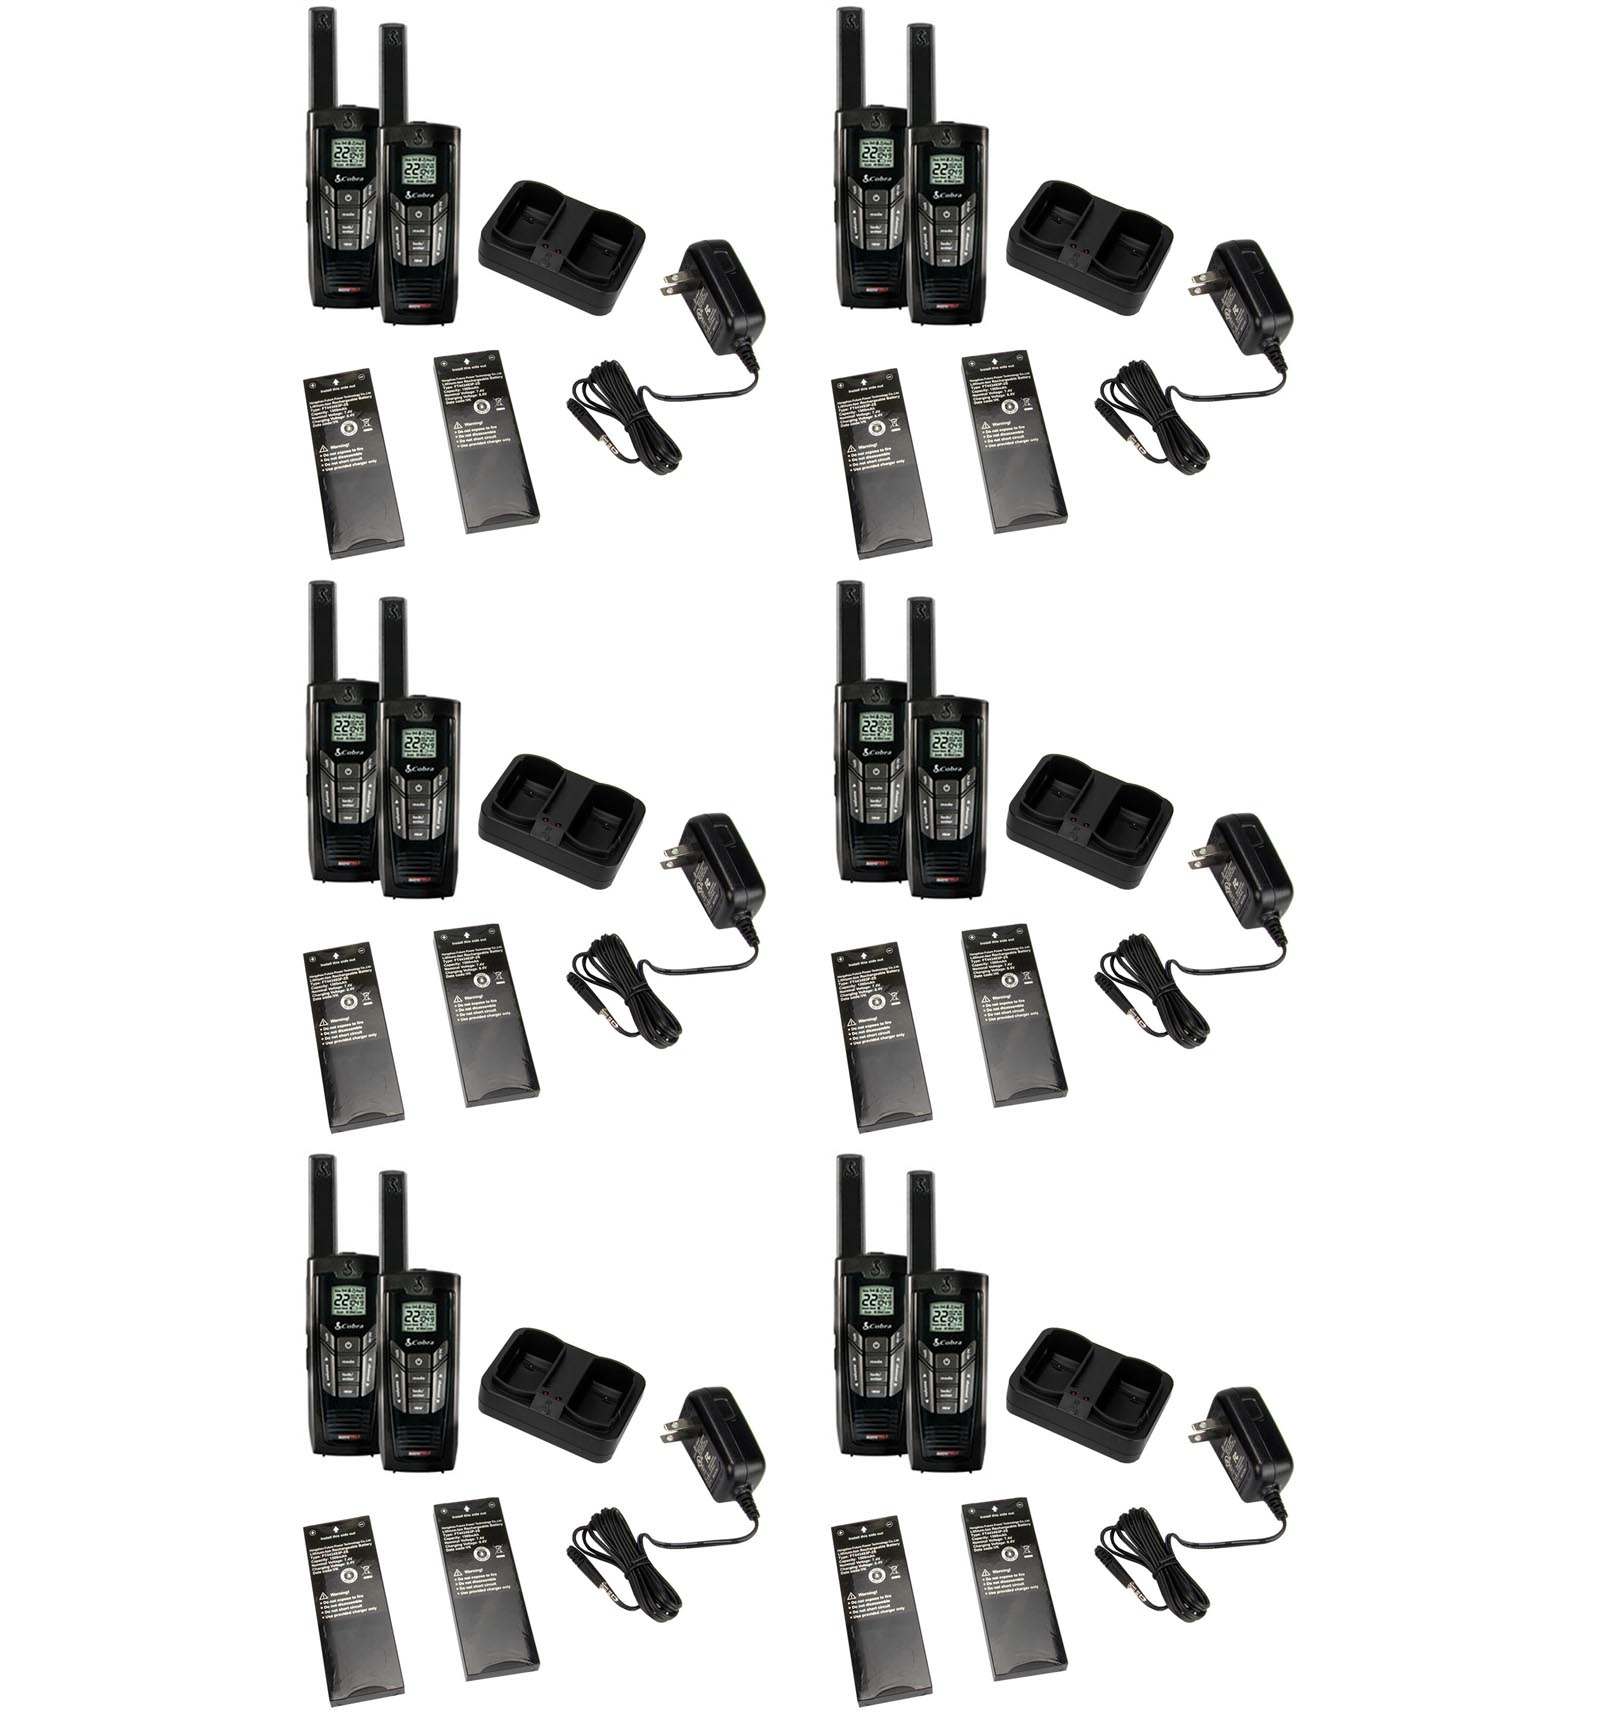 New! (12) COBRA CXR-925 35 Mile 22 Channel Walkie Talkie 2-Way Radios w  NOAA by Cobra